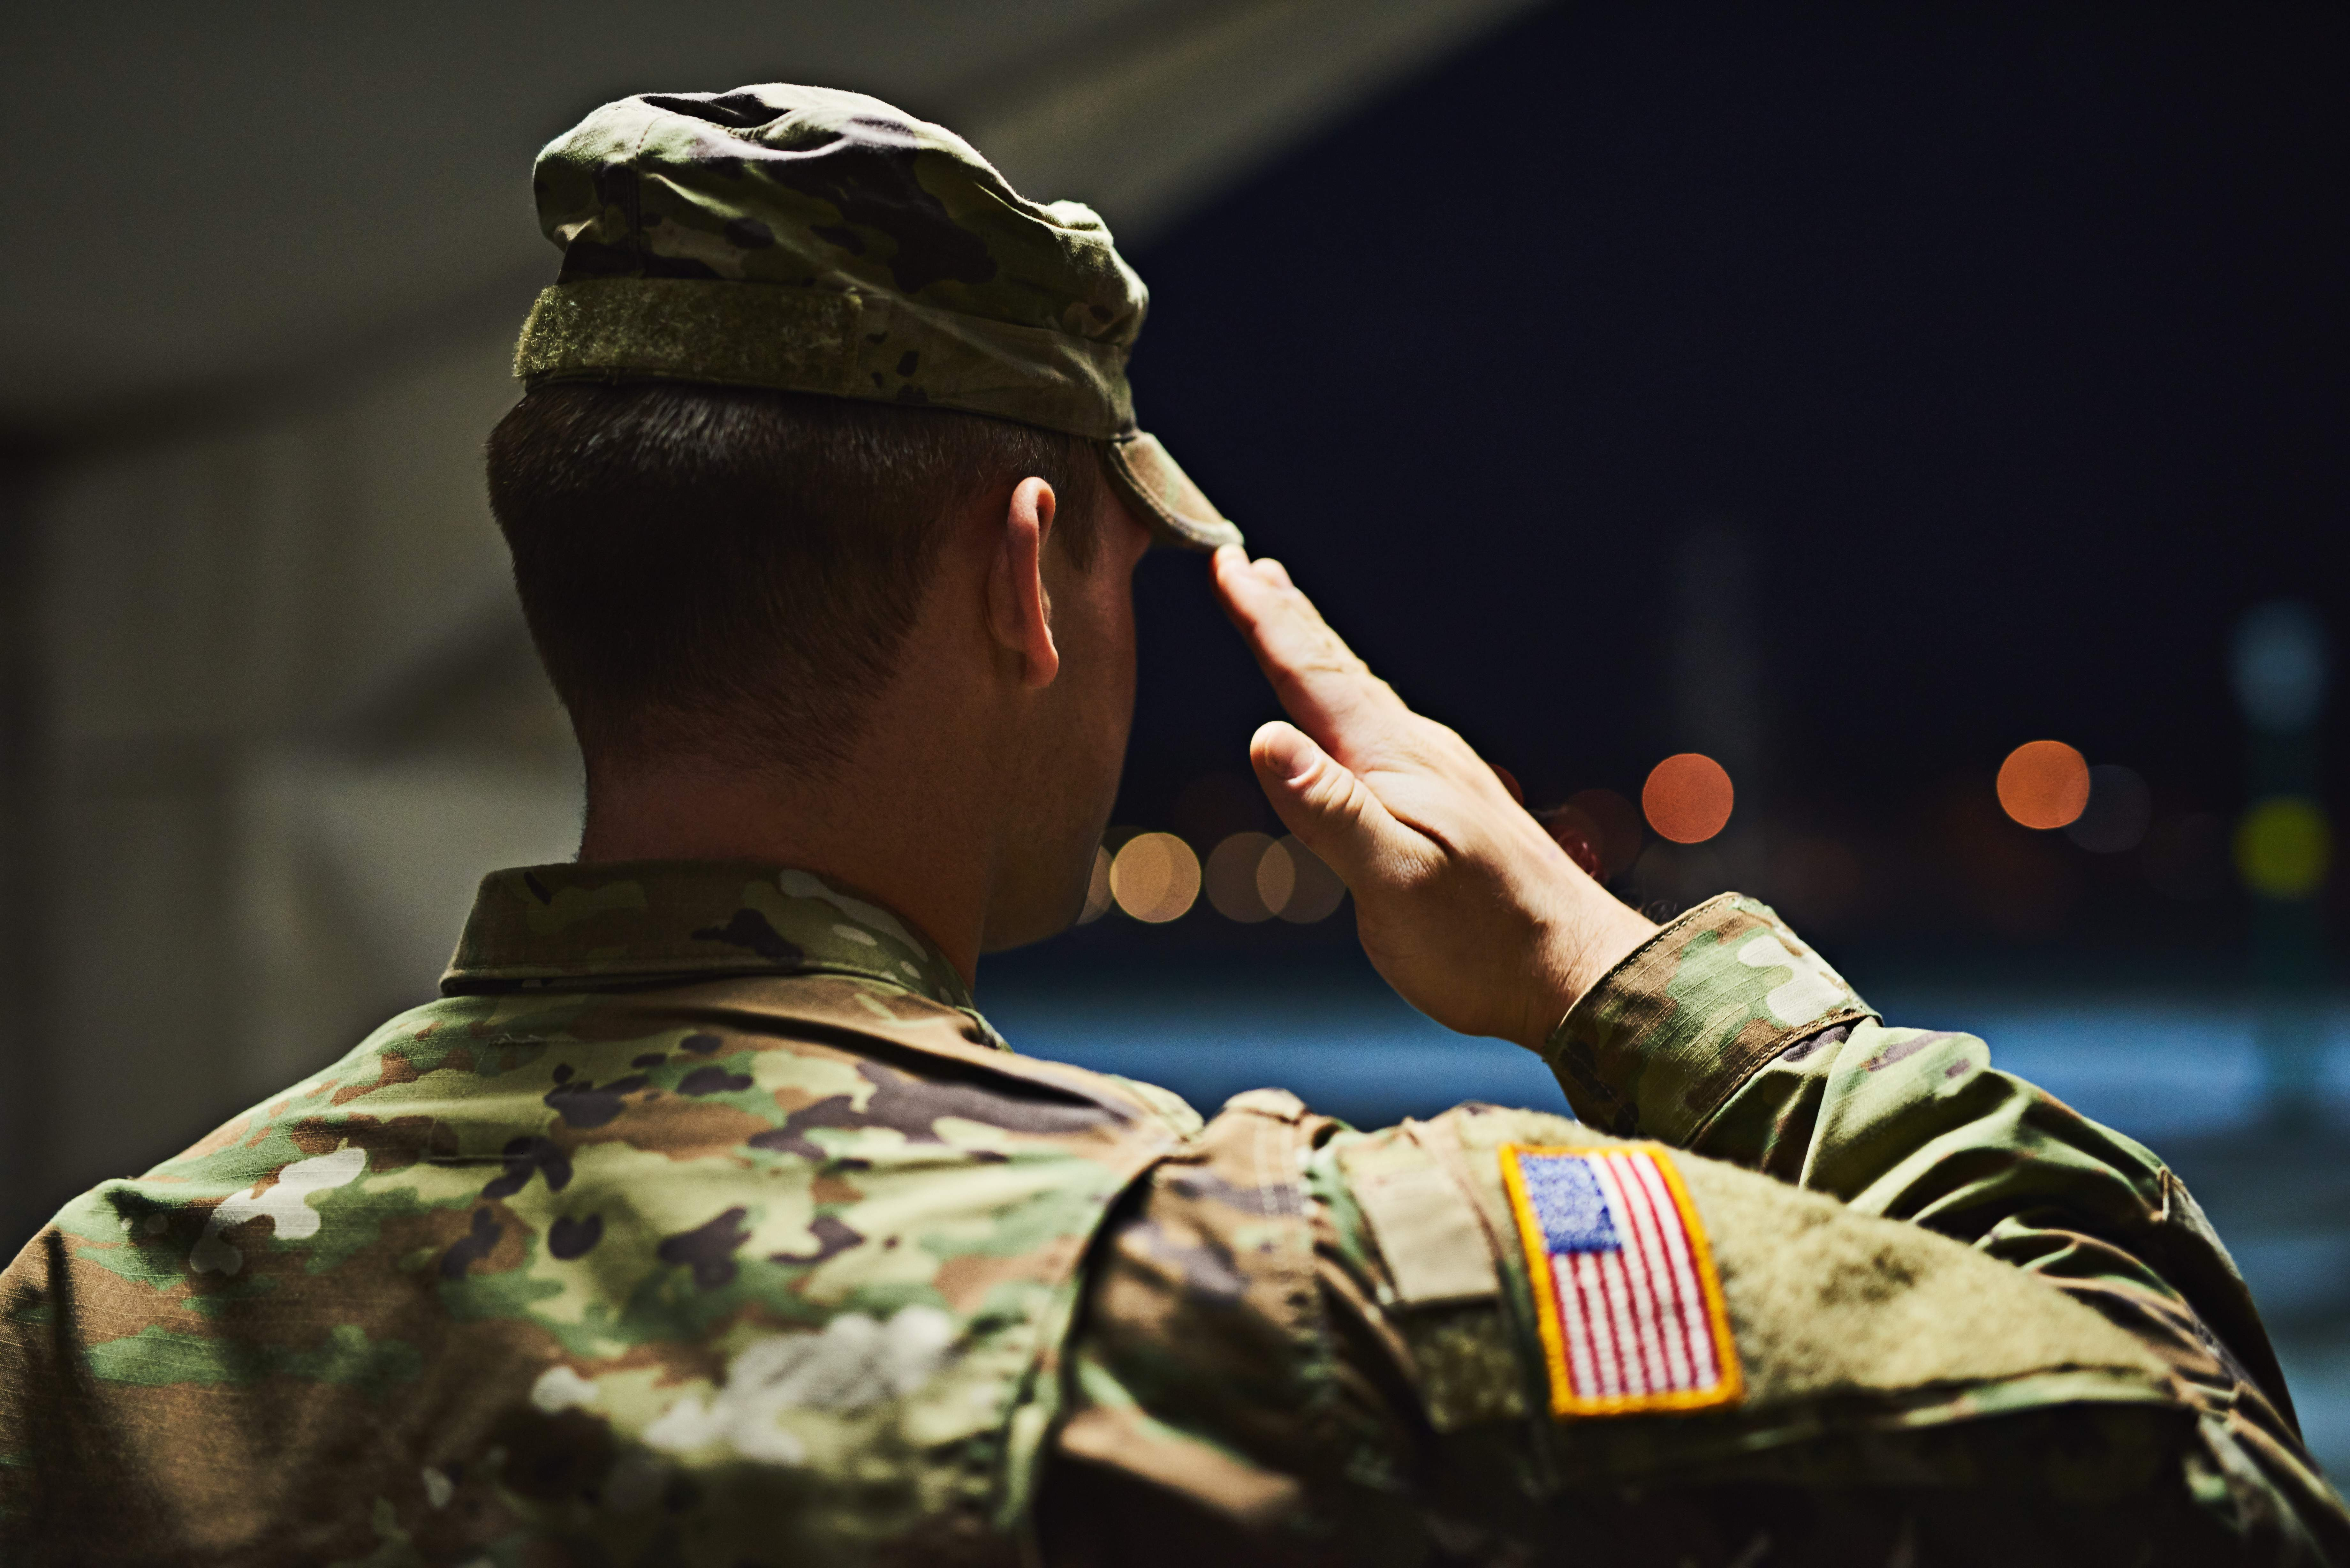 Loyal is the soldier who loves his country